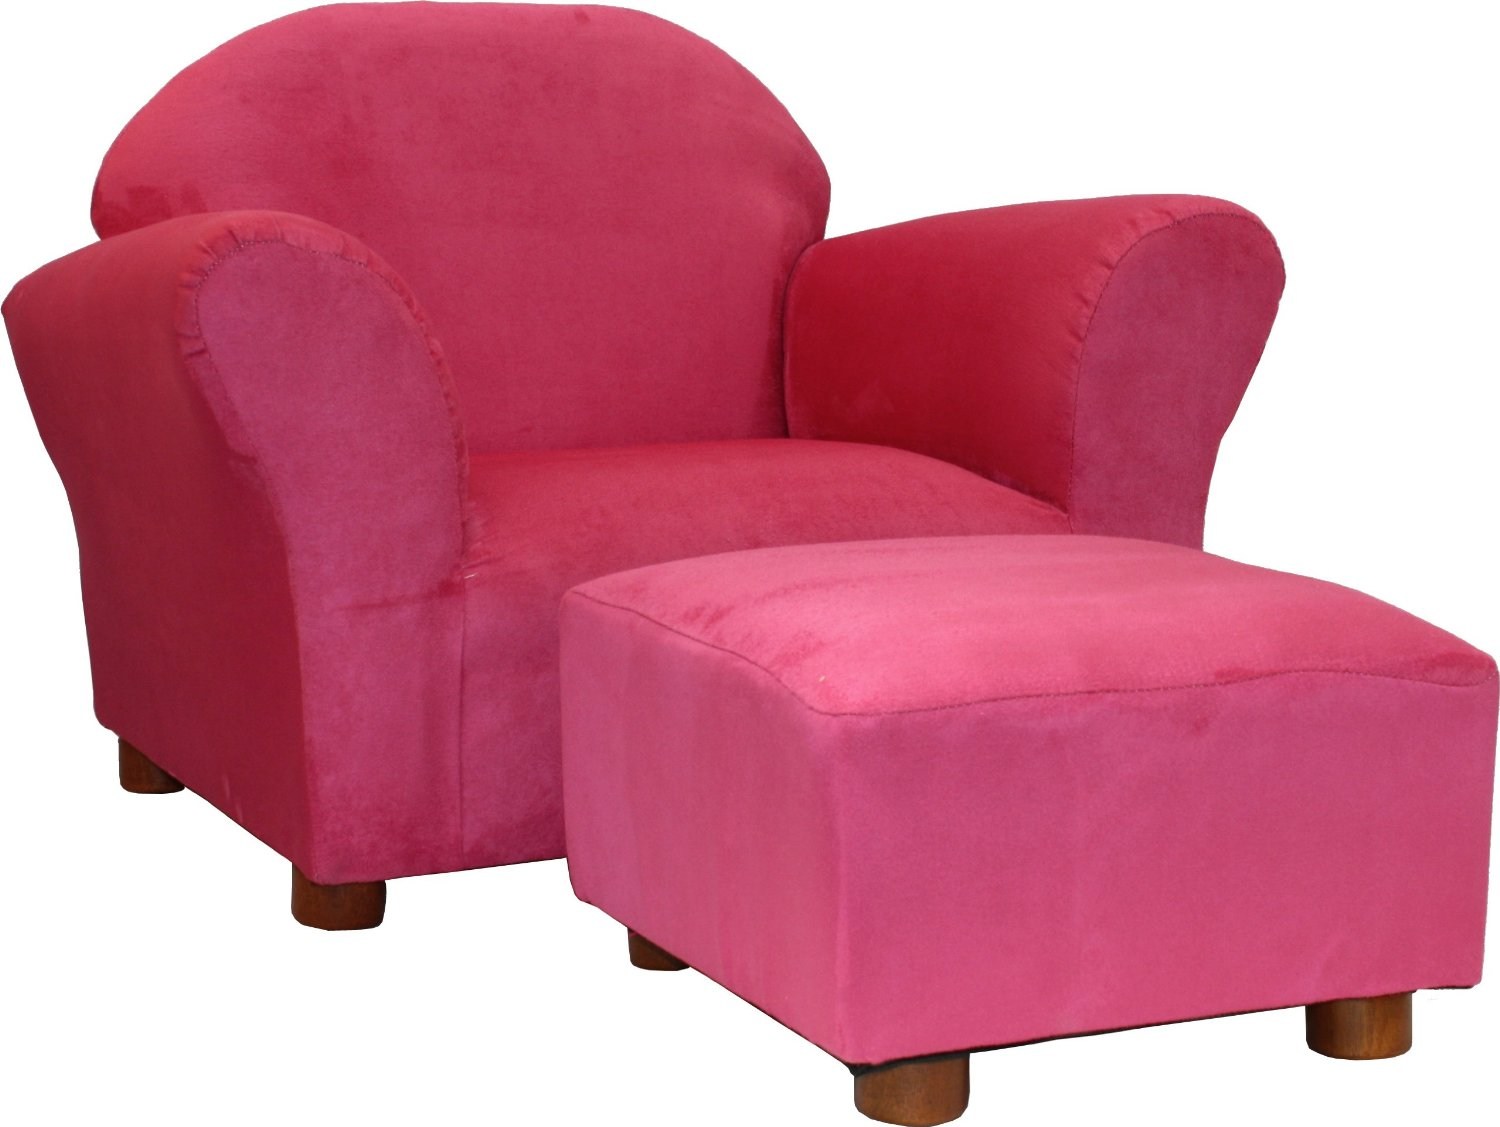 Kids' & Toddler Chair and Ottoman Sets